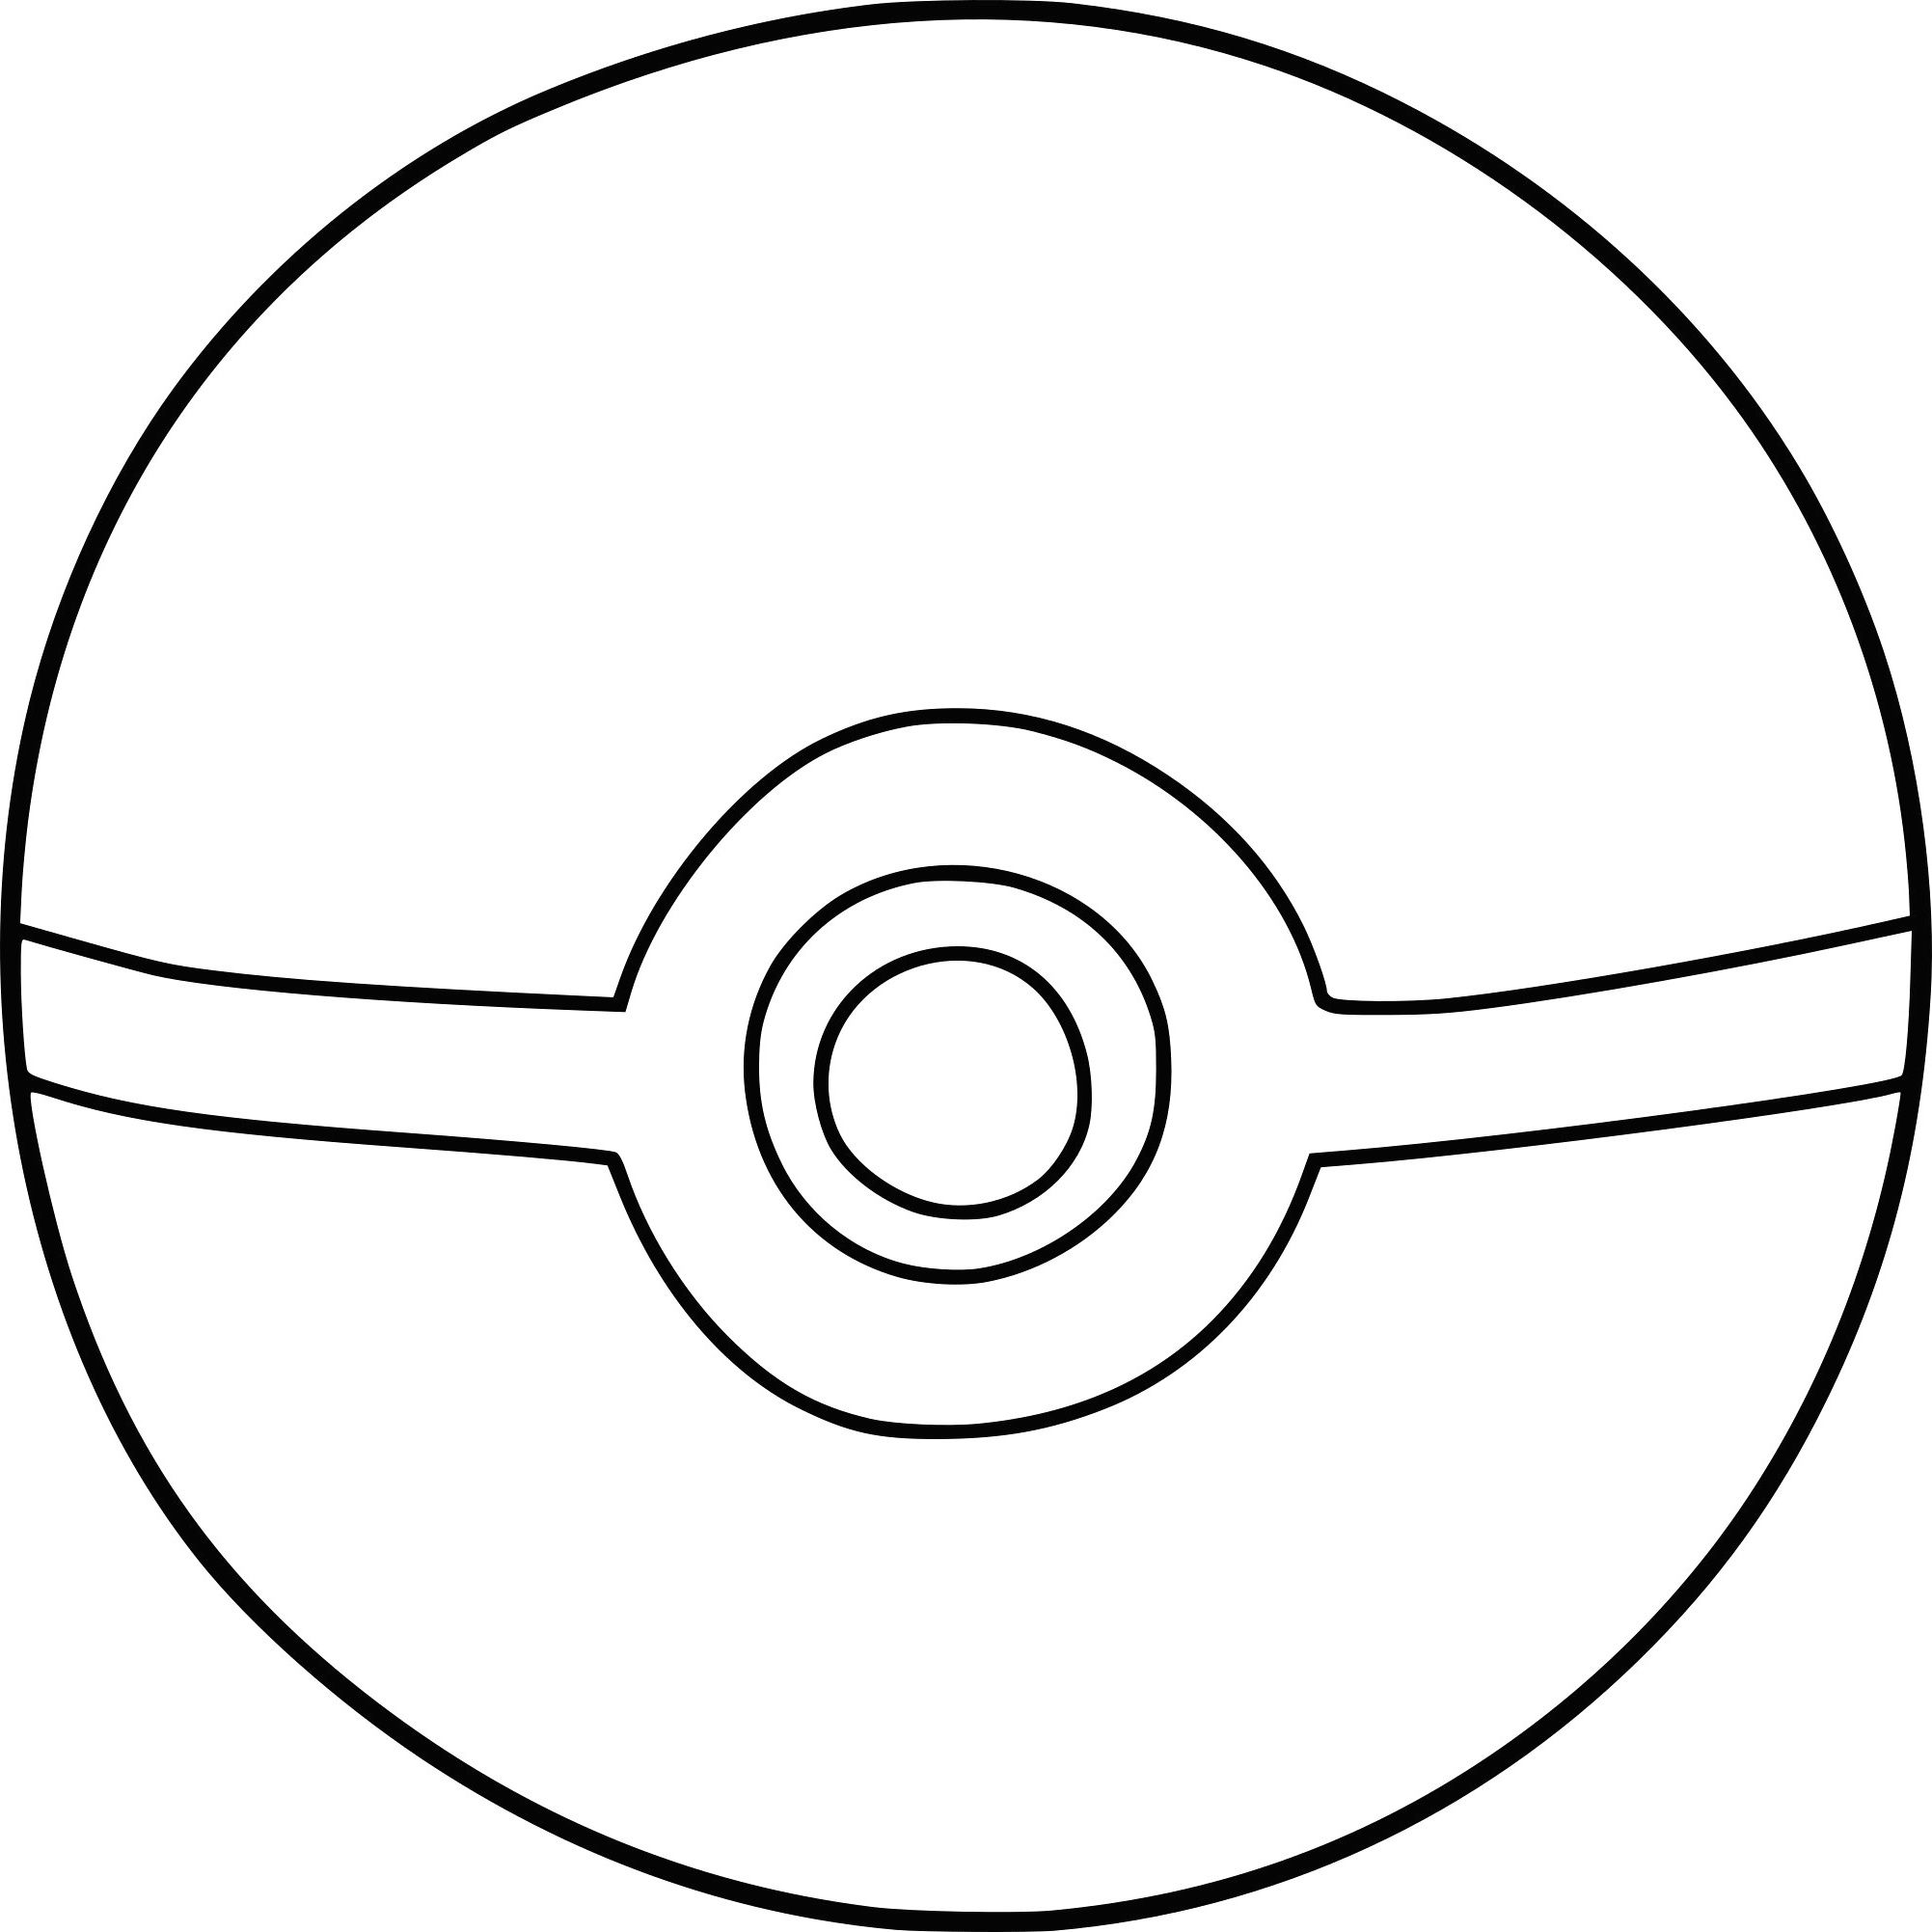 14 Meilleur De Coloriage Pokeball Galerie Coloriage Pokemon Coloriage Pokemon A Imprimer Coloriage